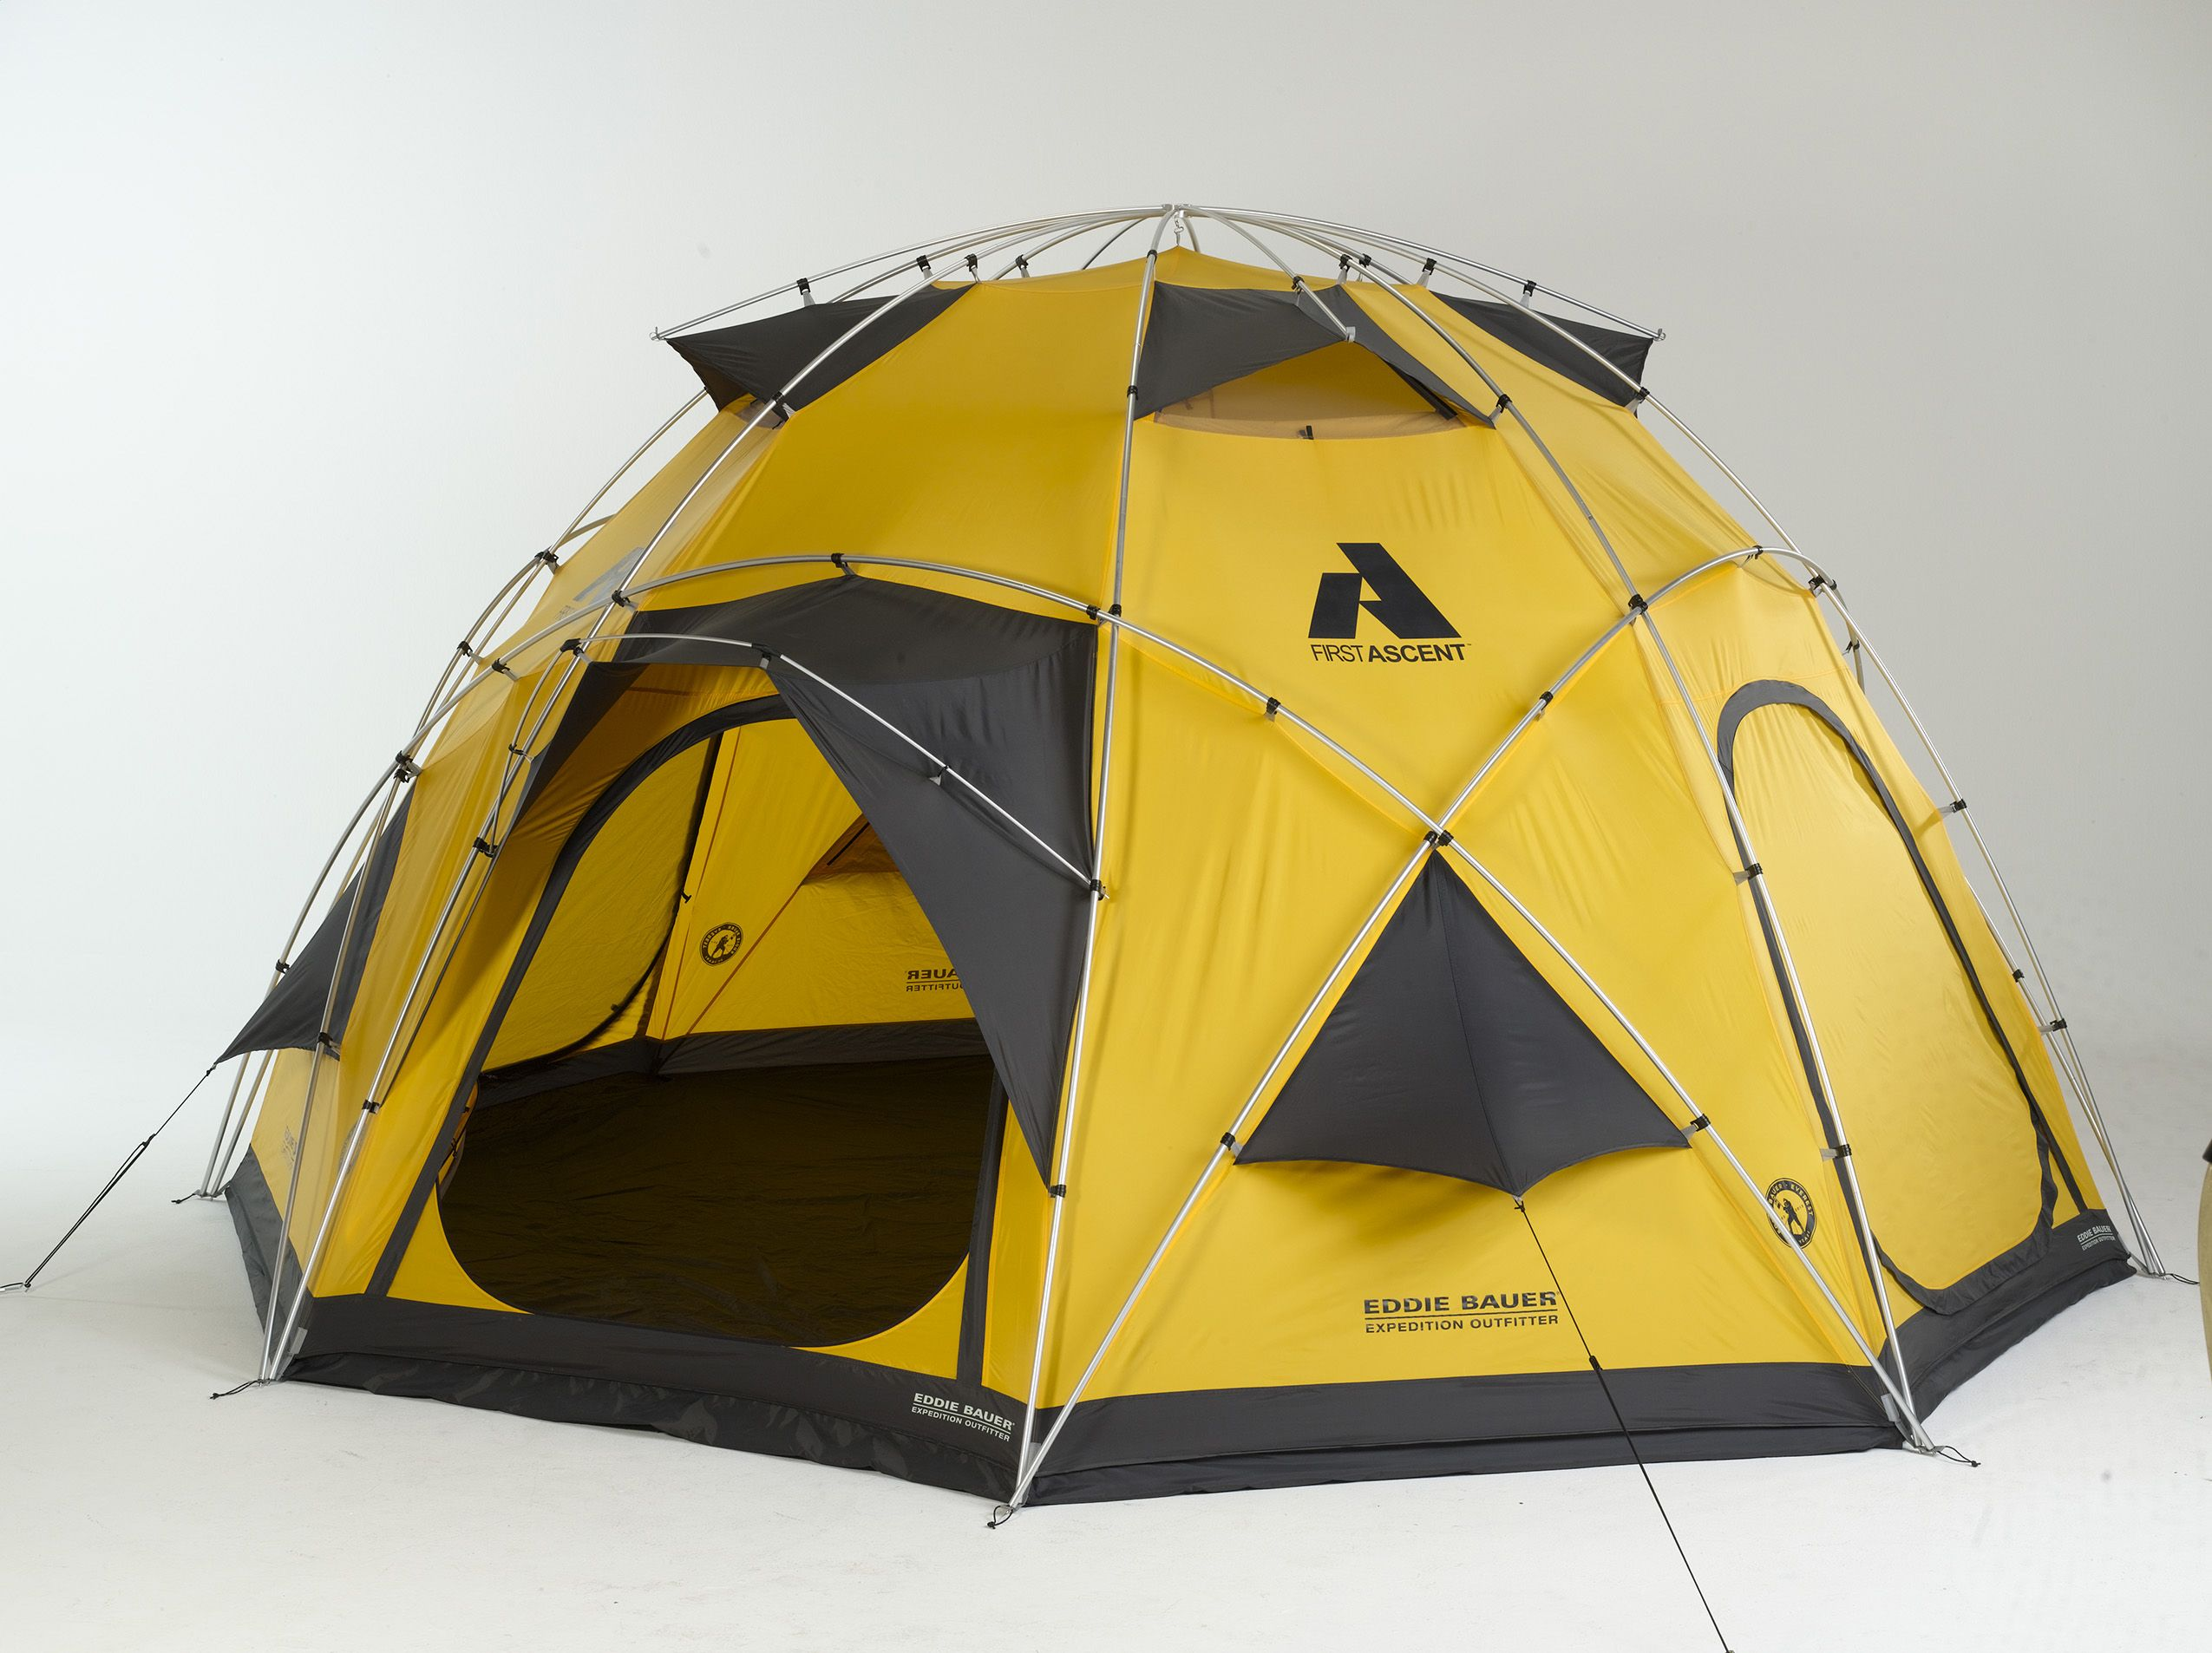 Pantheon Dome Tent Eddie Bauer | Cool Pitches | Tent camping